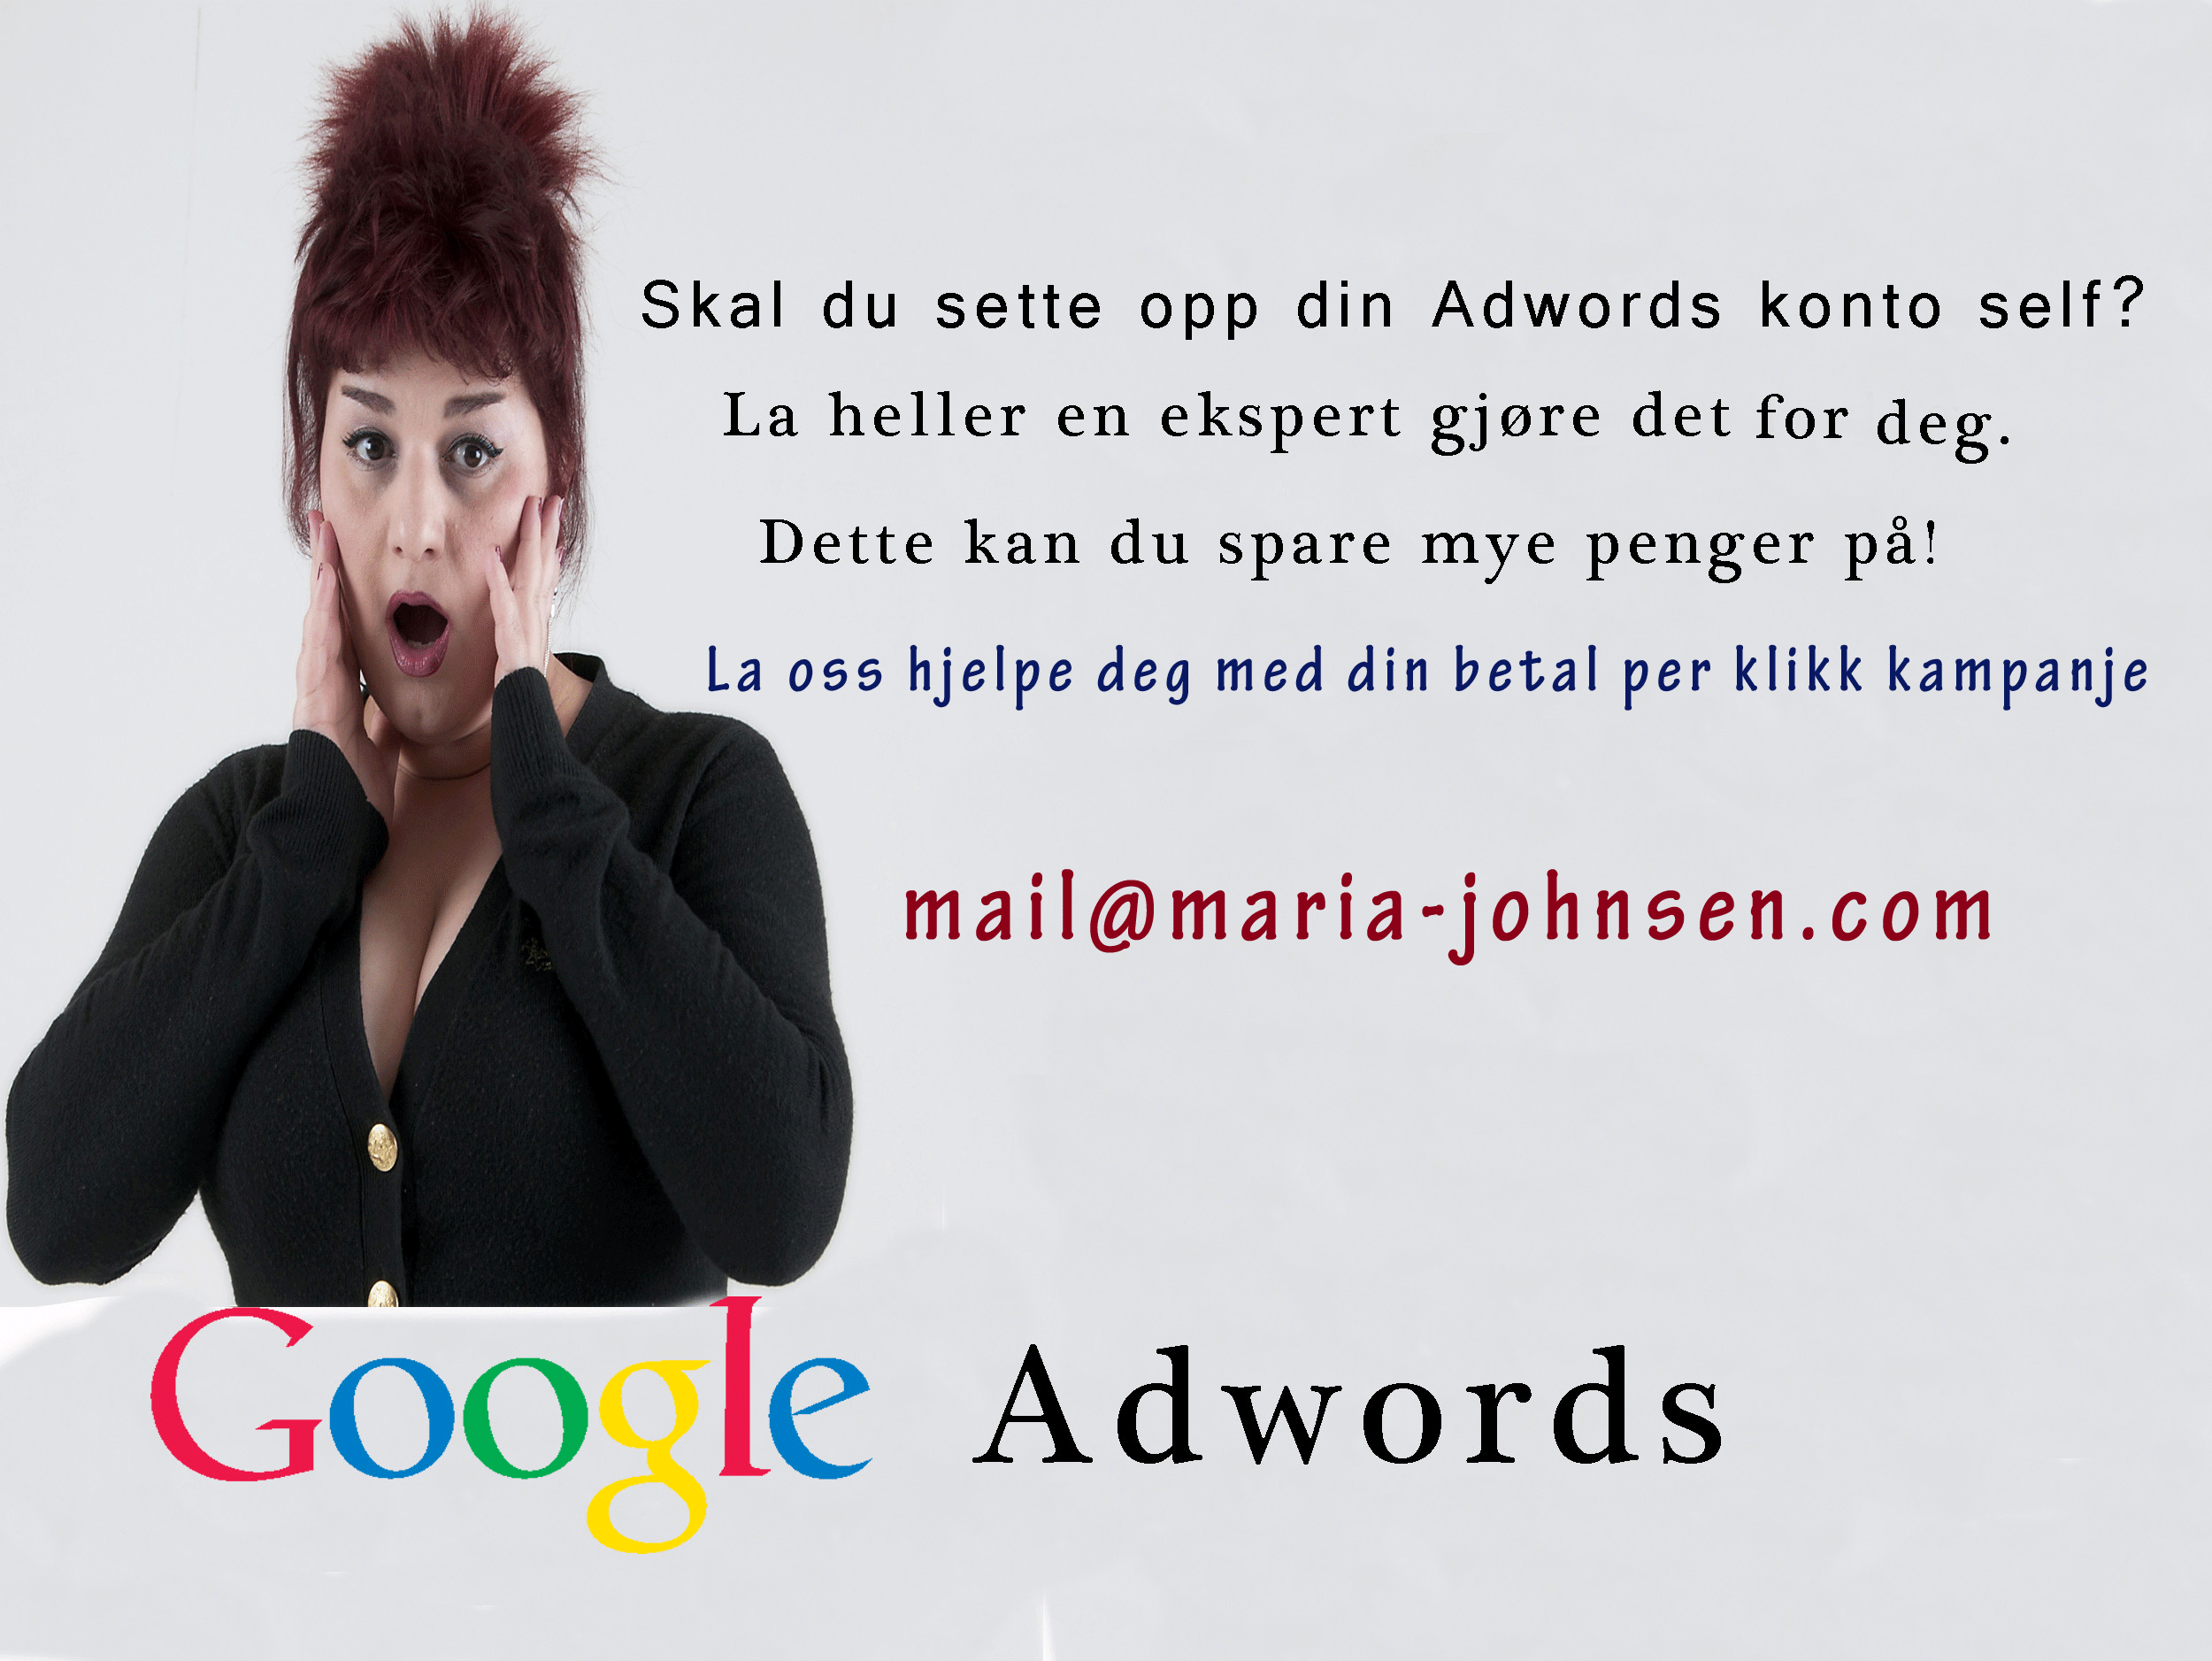 We manage your Google Adwords in Norway, generate sales & increase your Ecommerce's ROI. Contact +47 9061 27 31